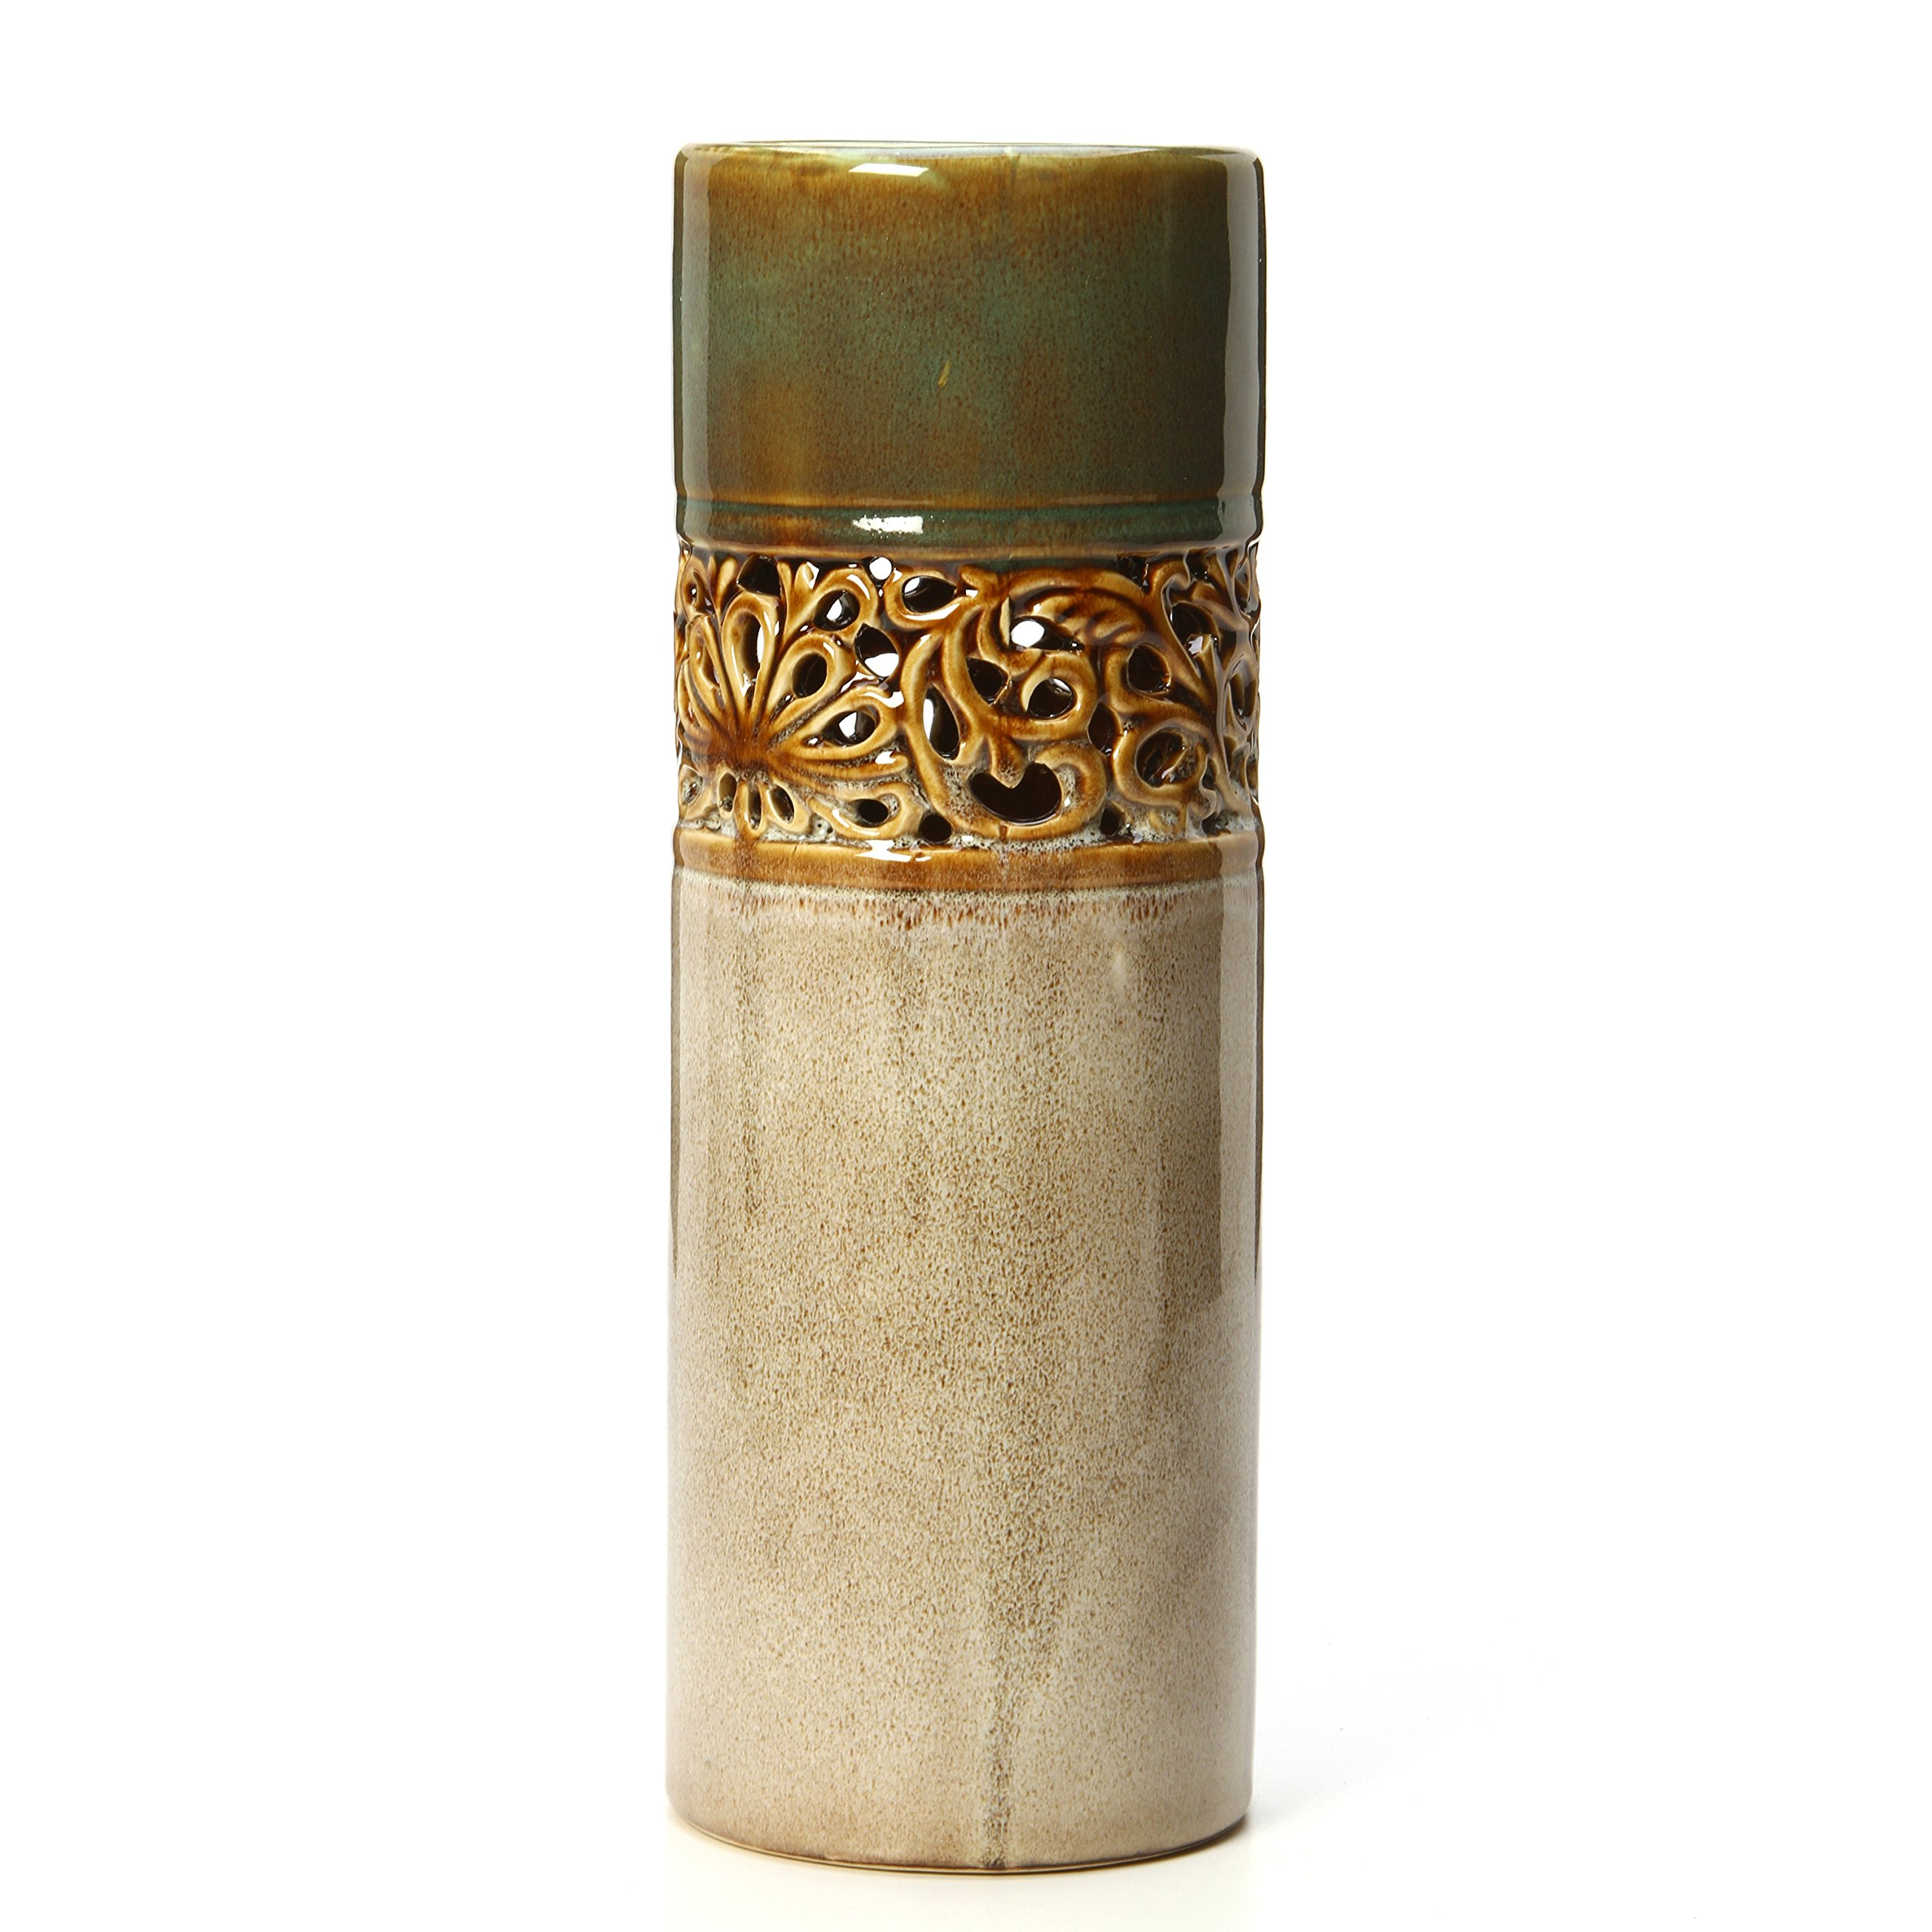 Hosley 12'' High Ceramic Decorative Floral Vase. Ideal for Weddings, Special Occasions and for Spa, Reiki, Meditation Settings, Dried Floral Vase O6